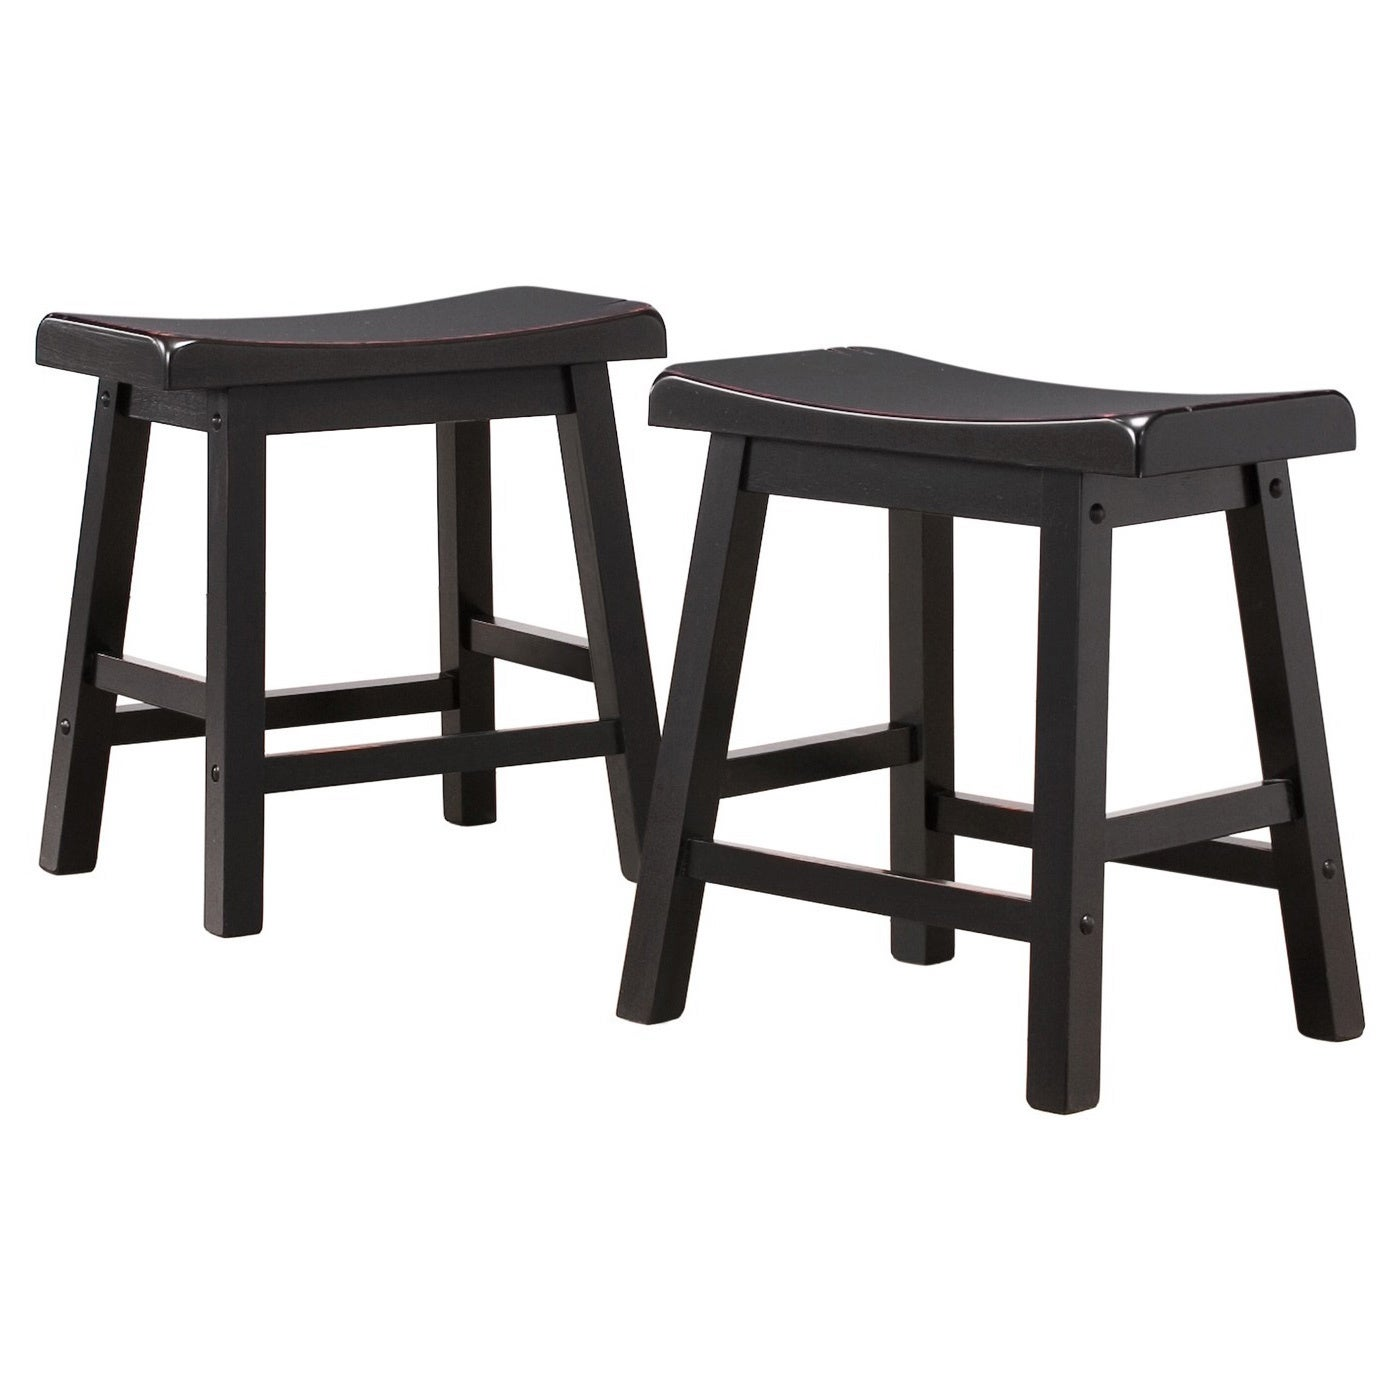 Miraculous Salvador Saddle Back 18 Inch Backless Stool Set Of 2 By Inspire Q Bold Machost Co Dining Chair Design Ideas Machostcouk